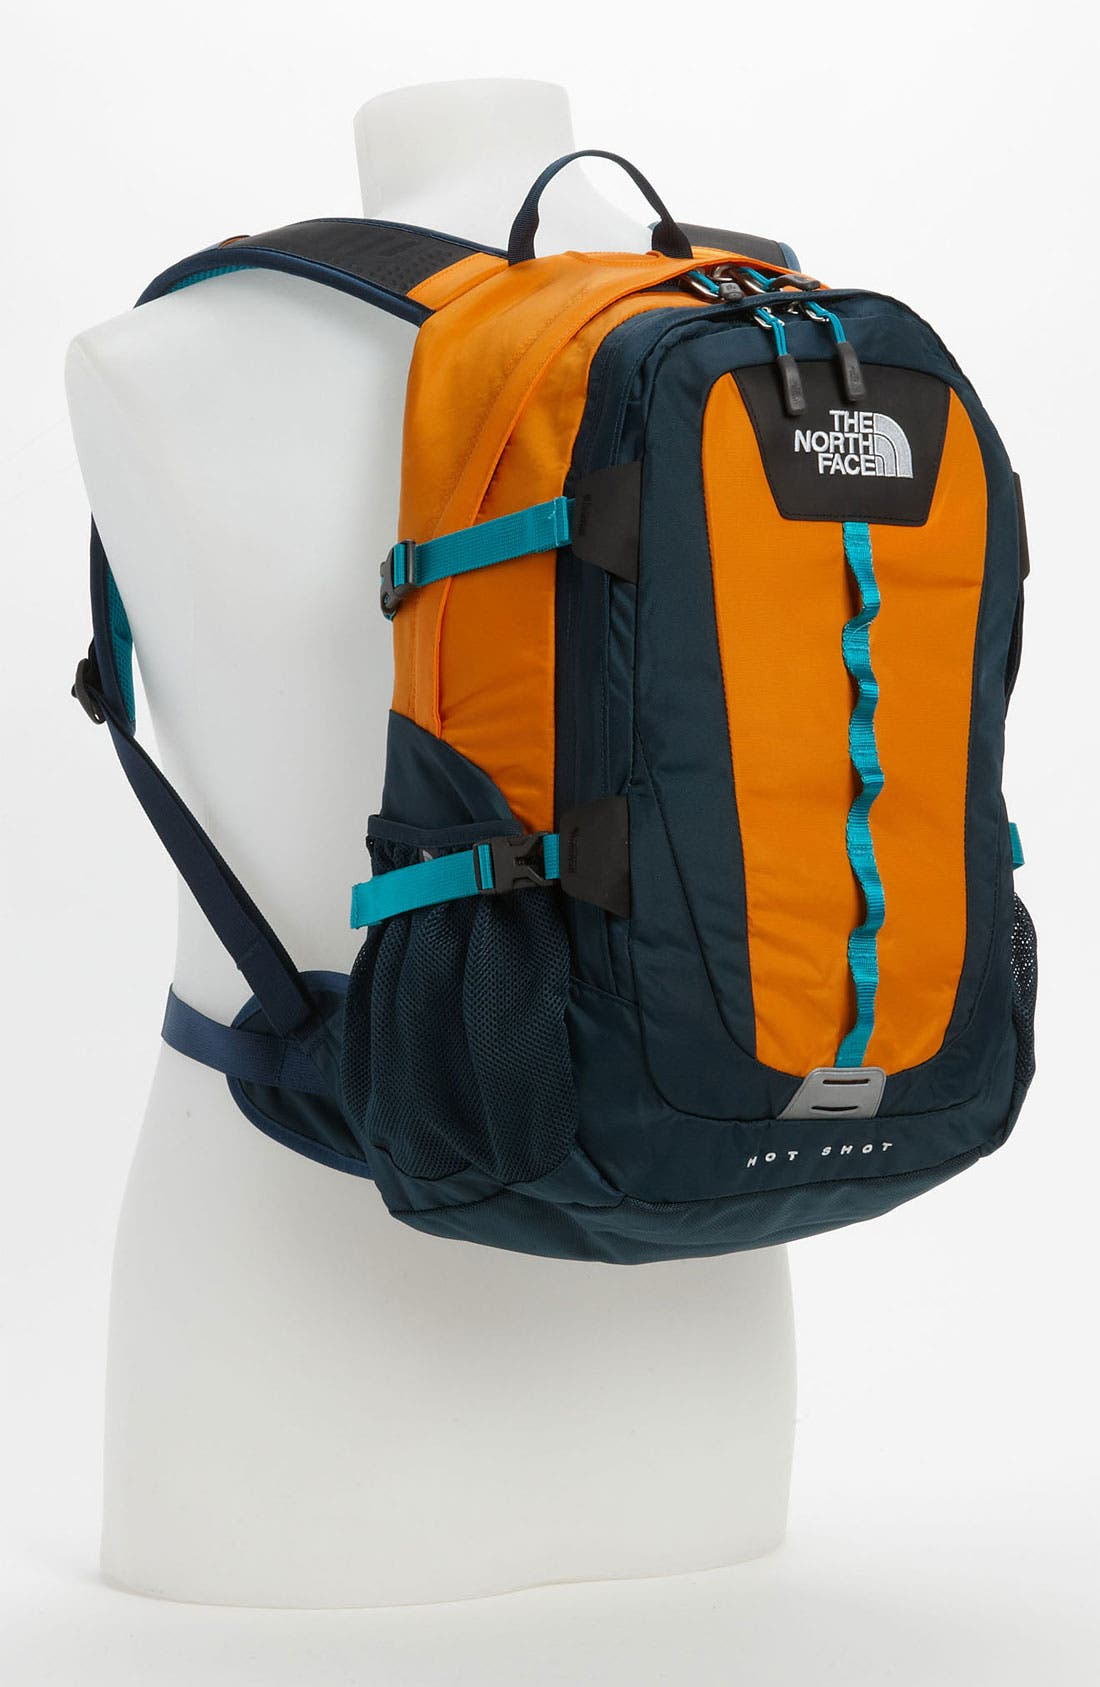 Alternate Image 4  - The North Face 'Hot Shot' Backpack